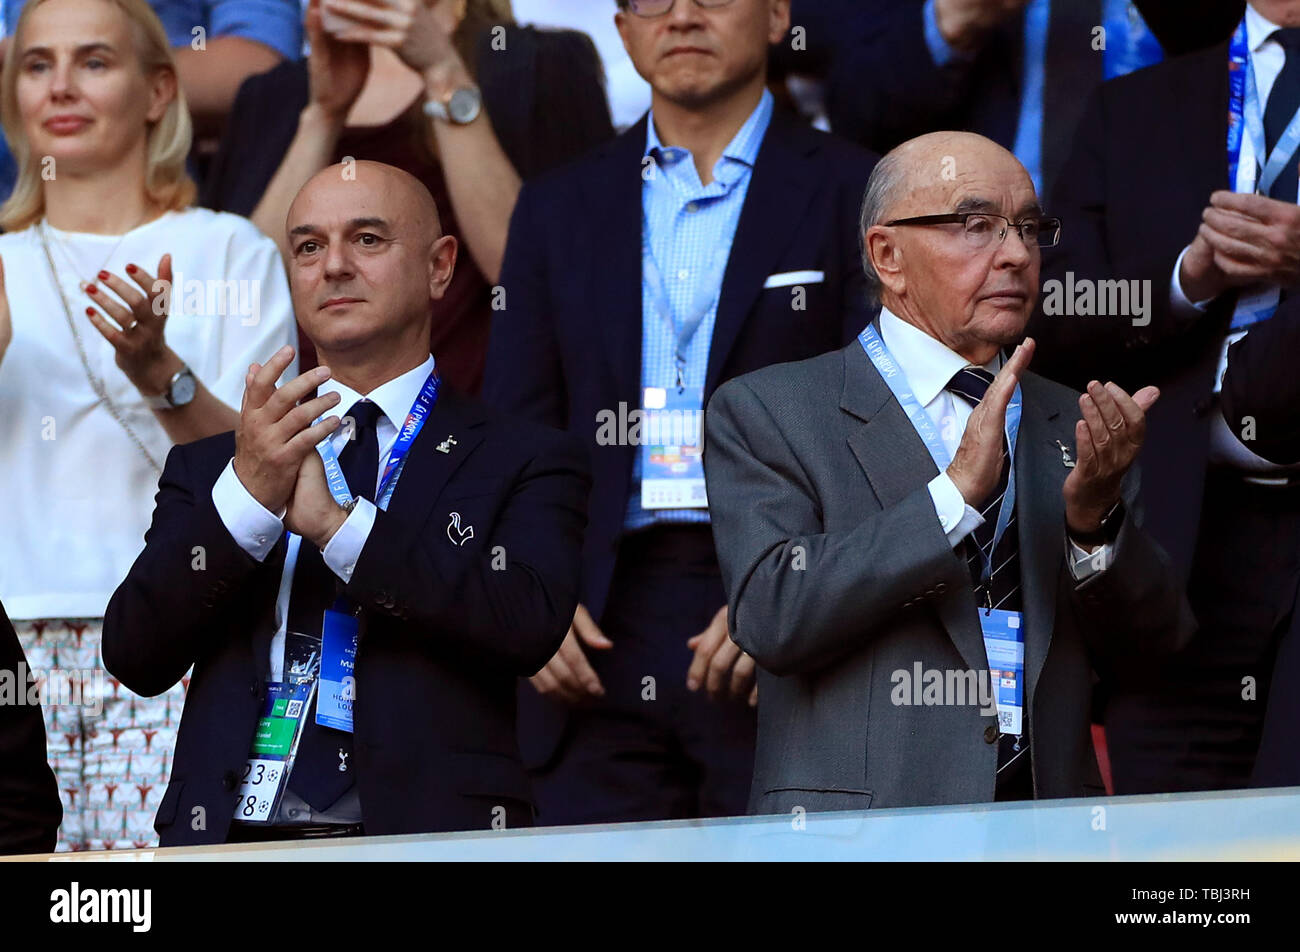 Tottenham Hotspur owner Daniel Levy and Joe Lewis in the stands